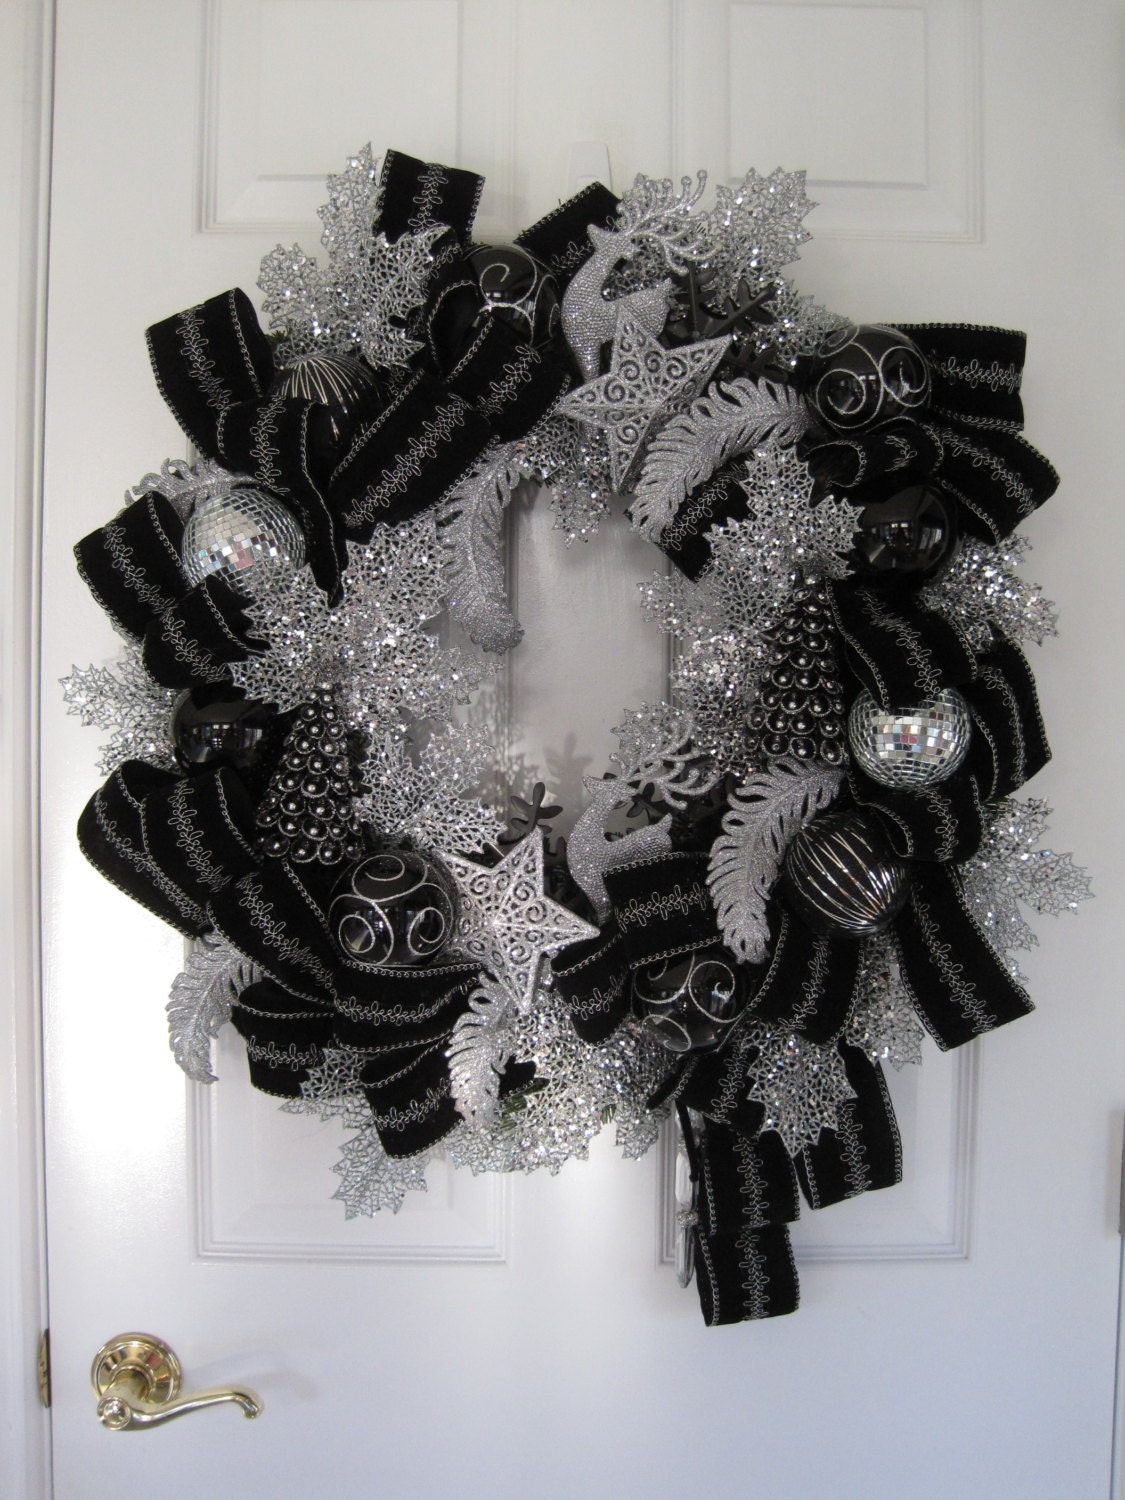 BLACK SILVER Luxurious Christmas Ornaments Velvet Ribbon